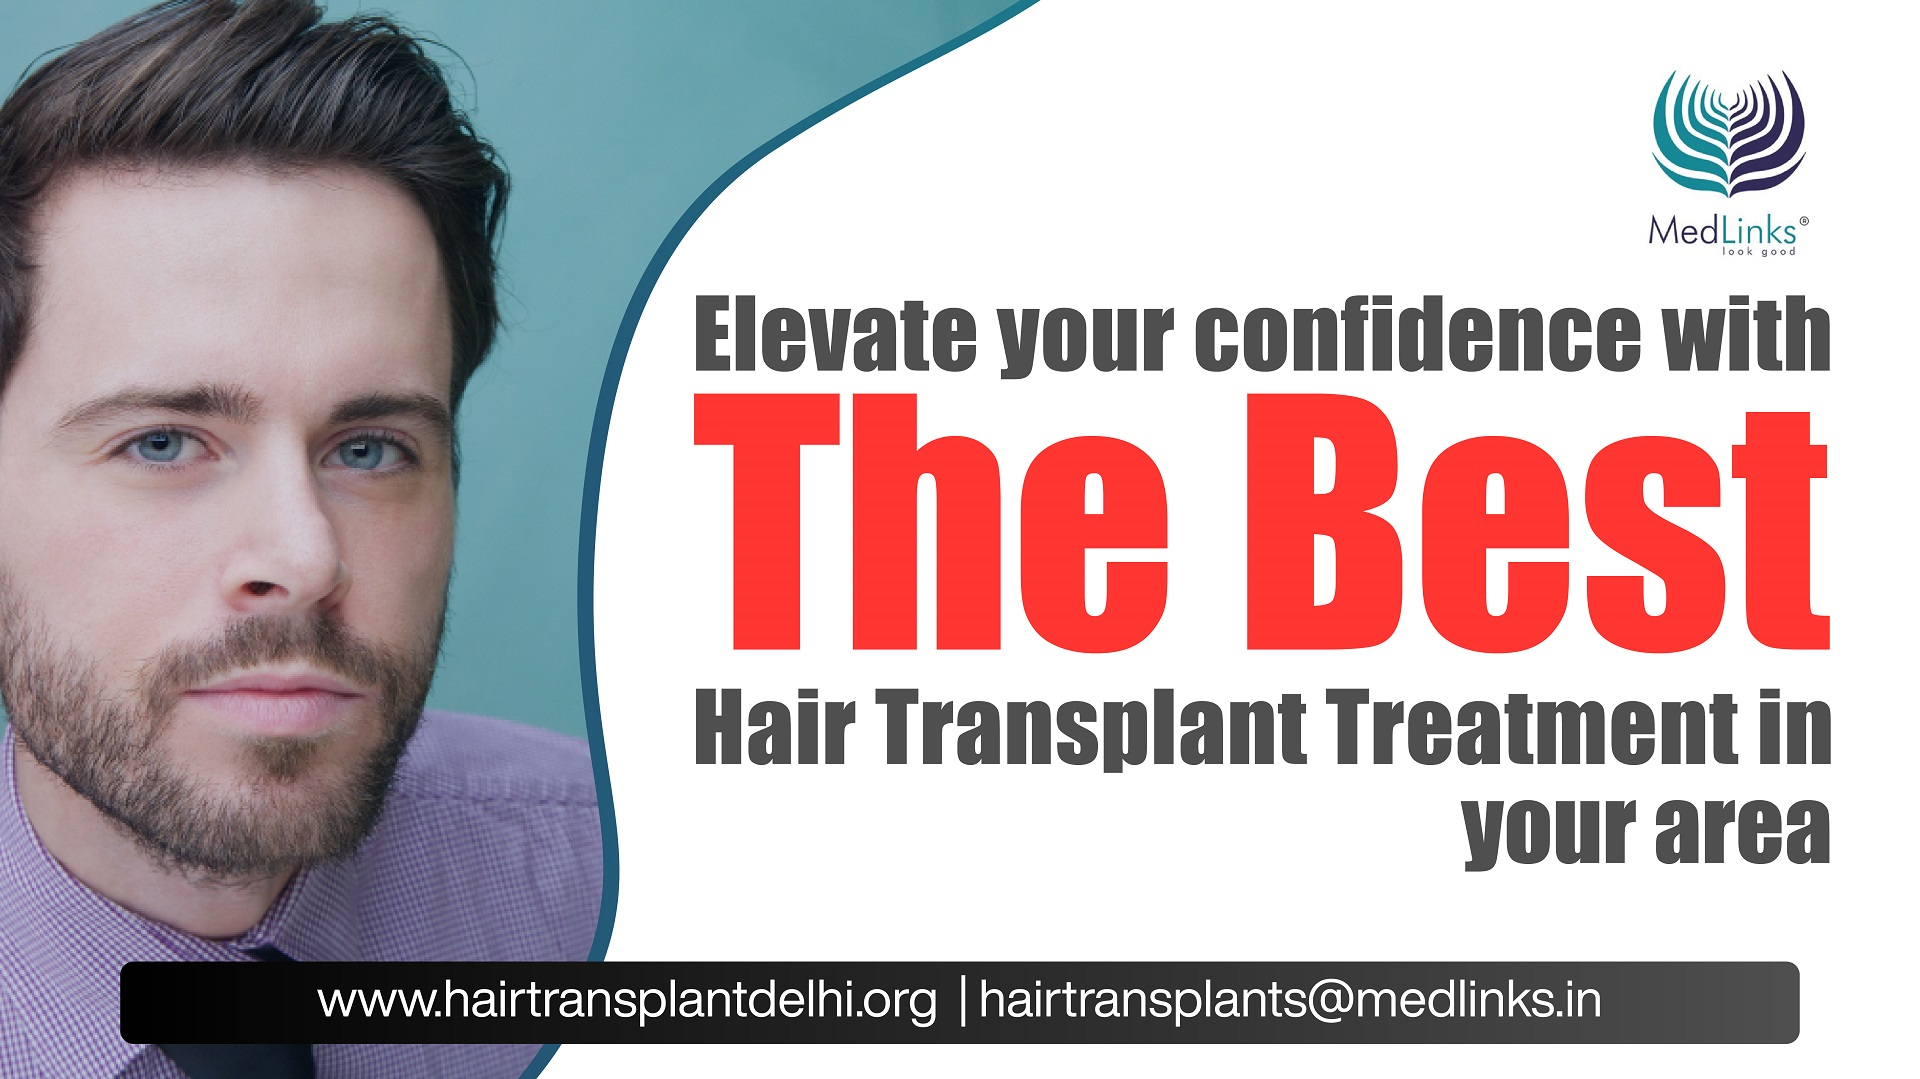 What are the criteria to choose the Best Hair Transplant Clinic in Delhi NCR?